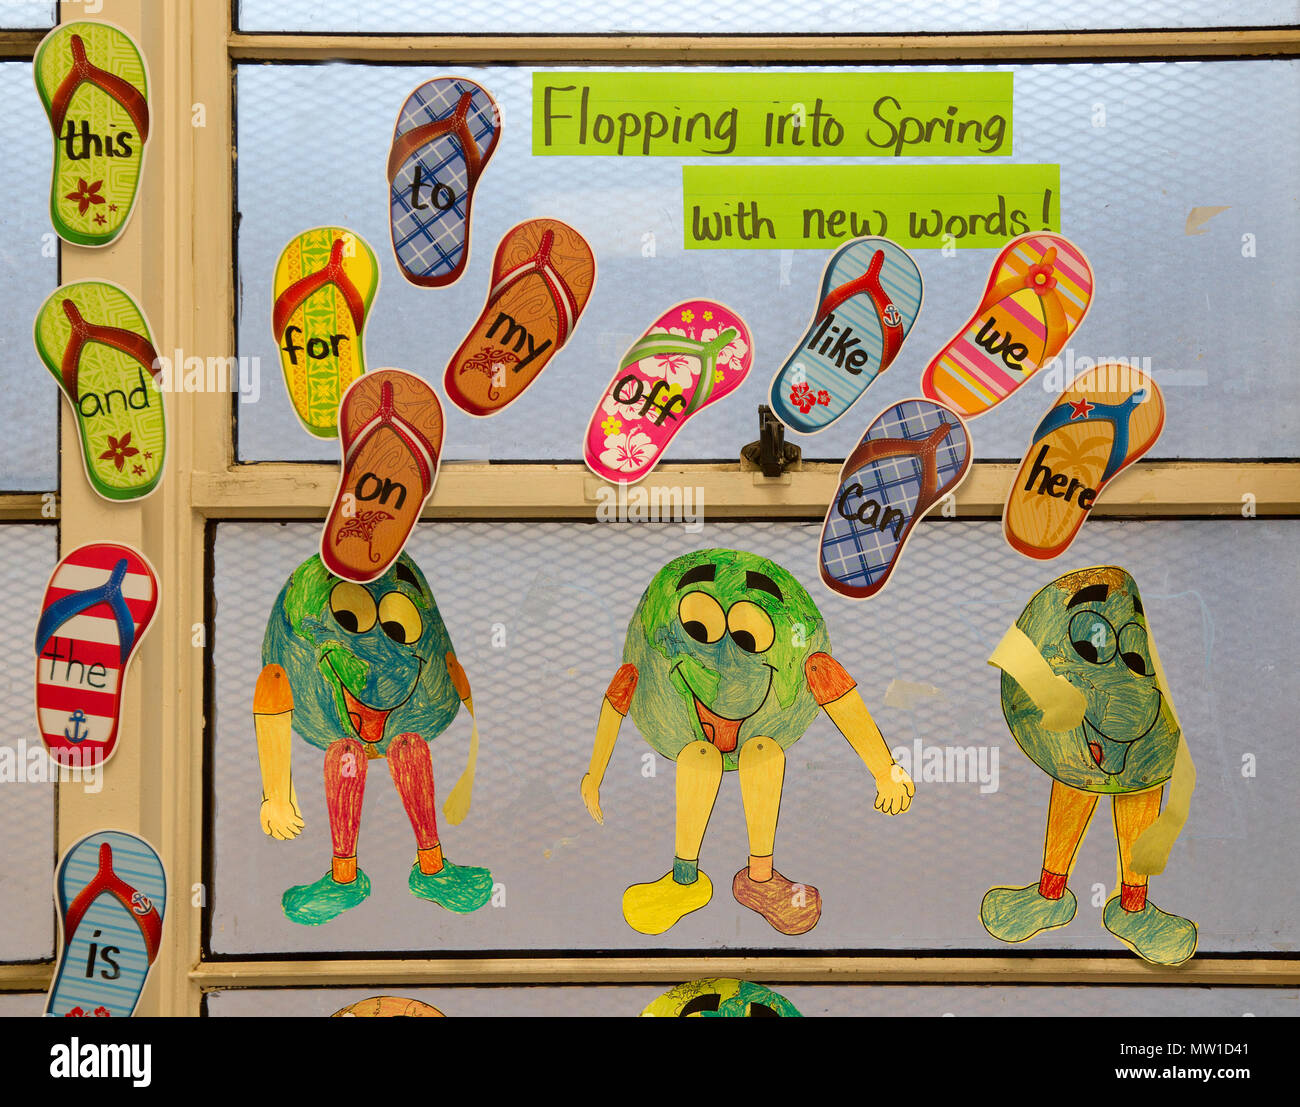 Visual Aid to Teach Kindergarten Children New Words - Stock Image